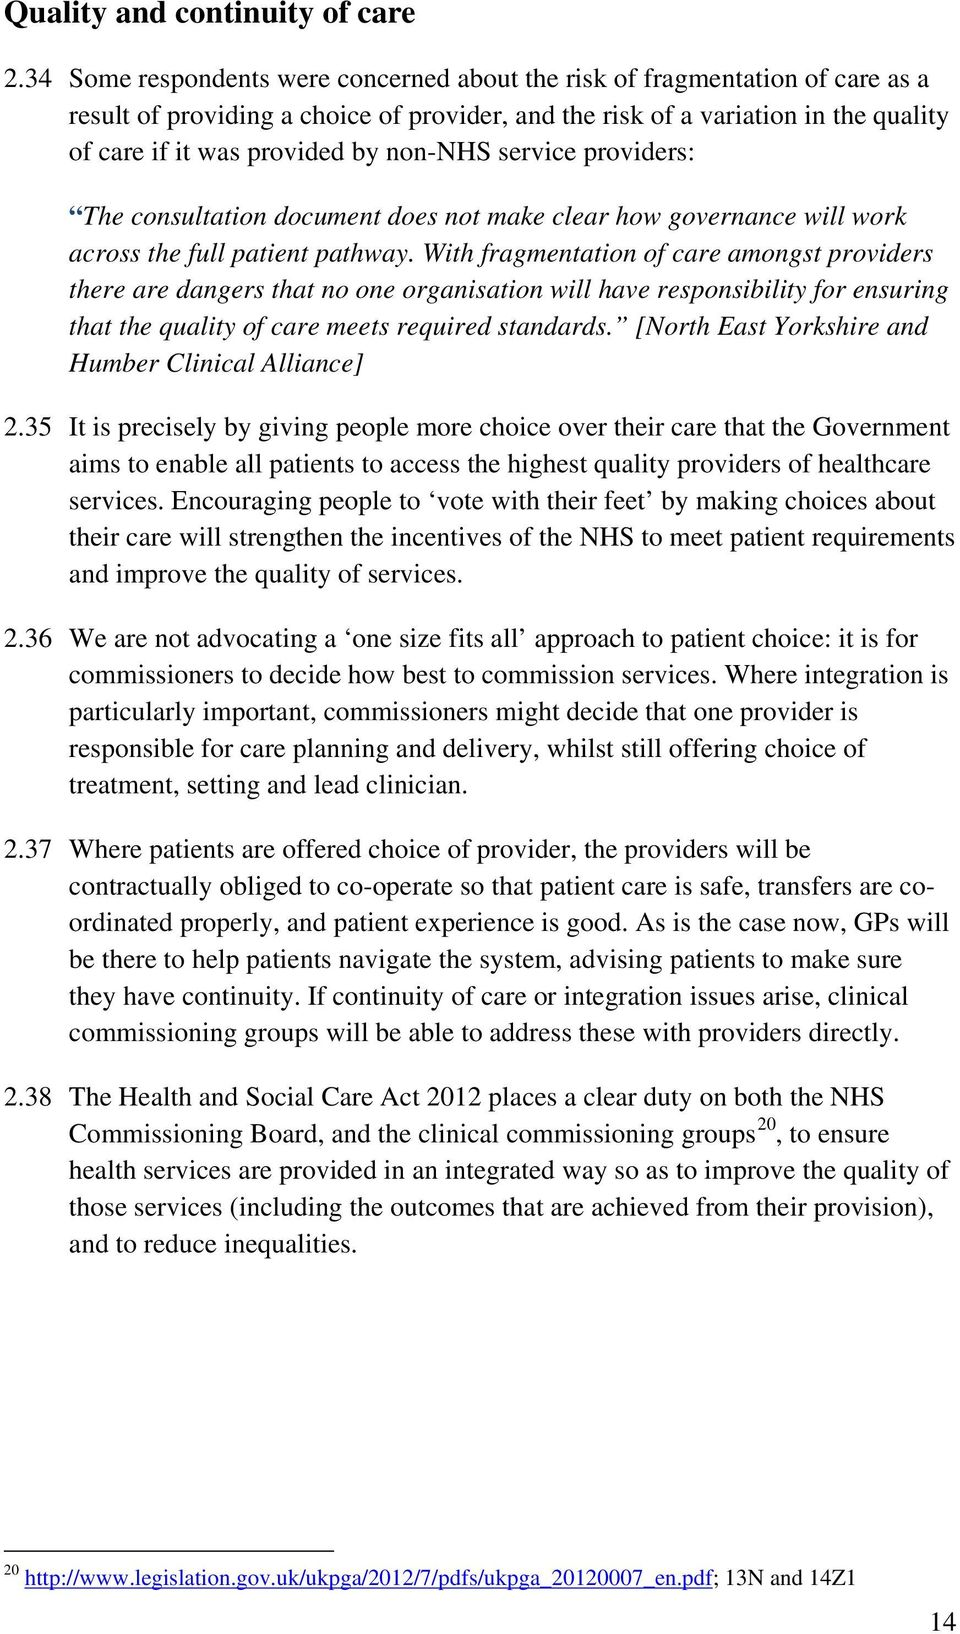 non-nhs service providers: The consultation document does not make clear how governance will work across the full patient pathway.